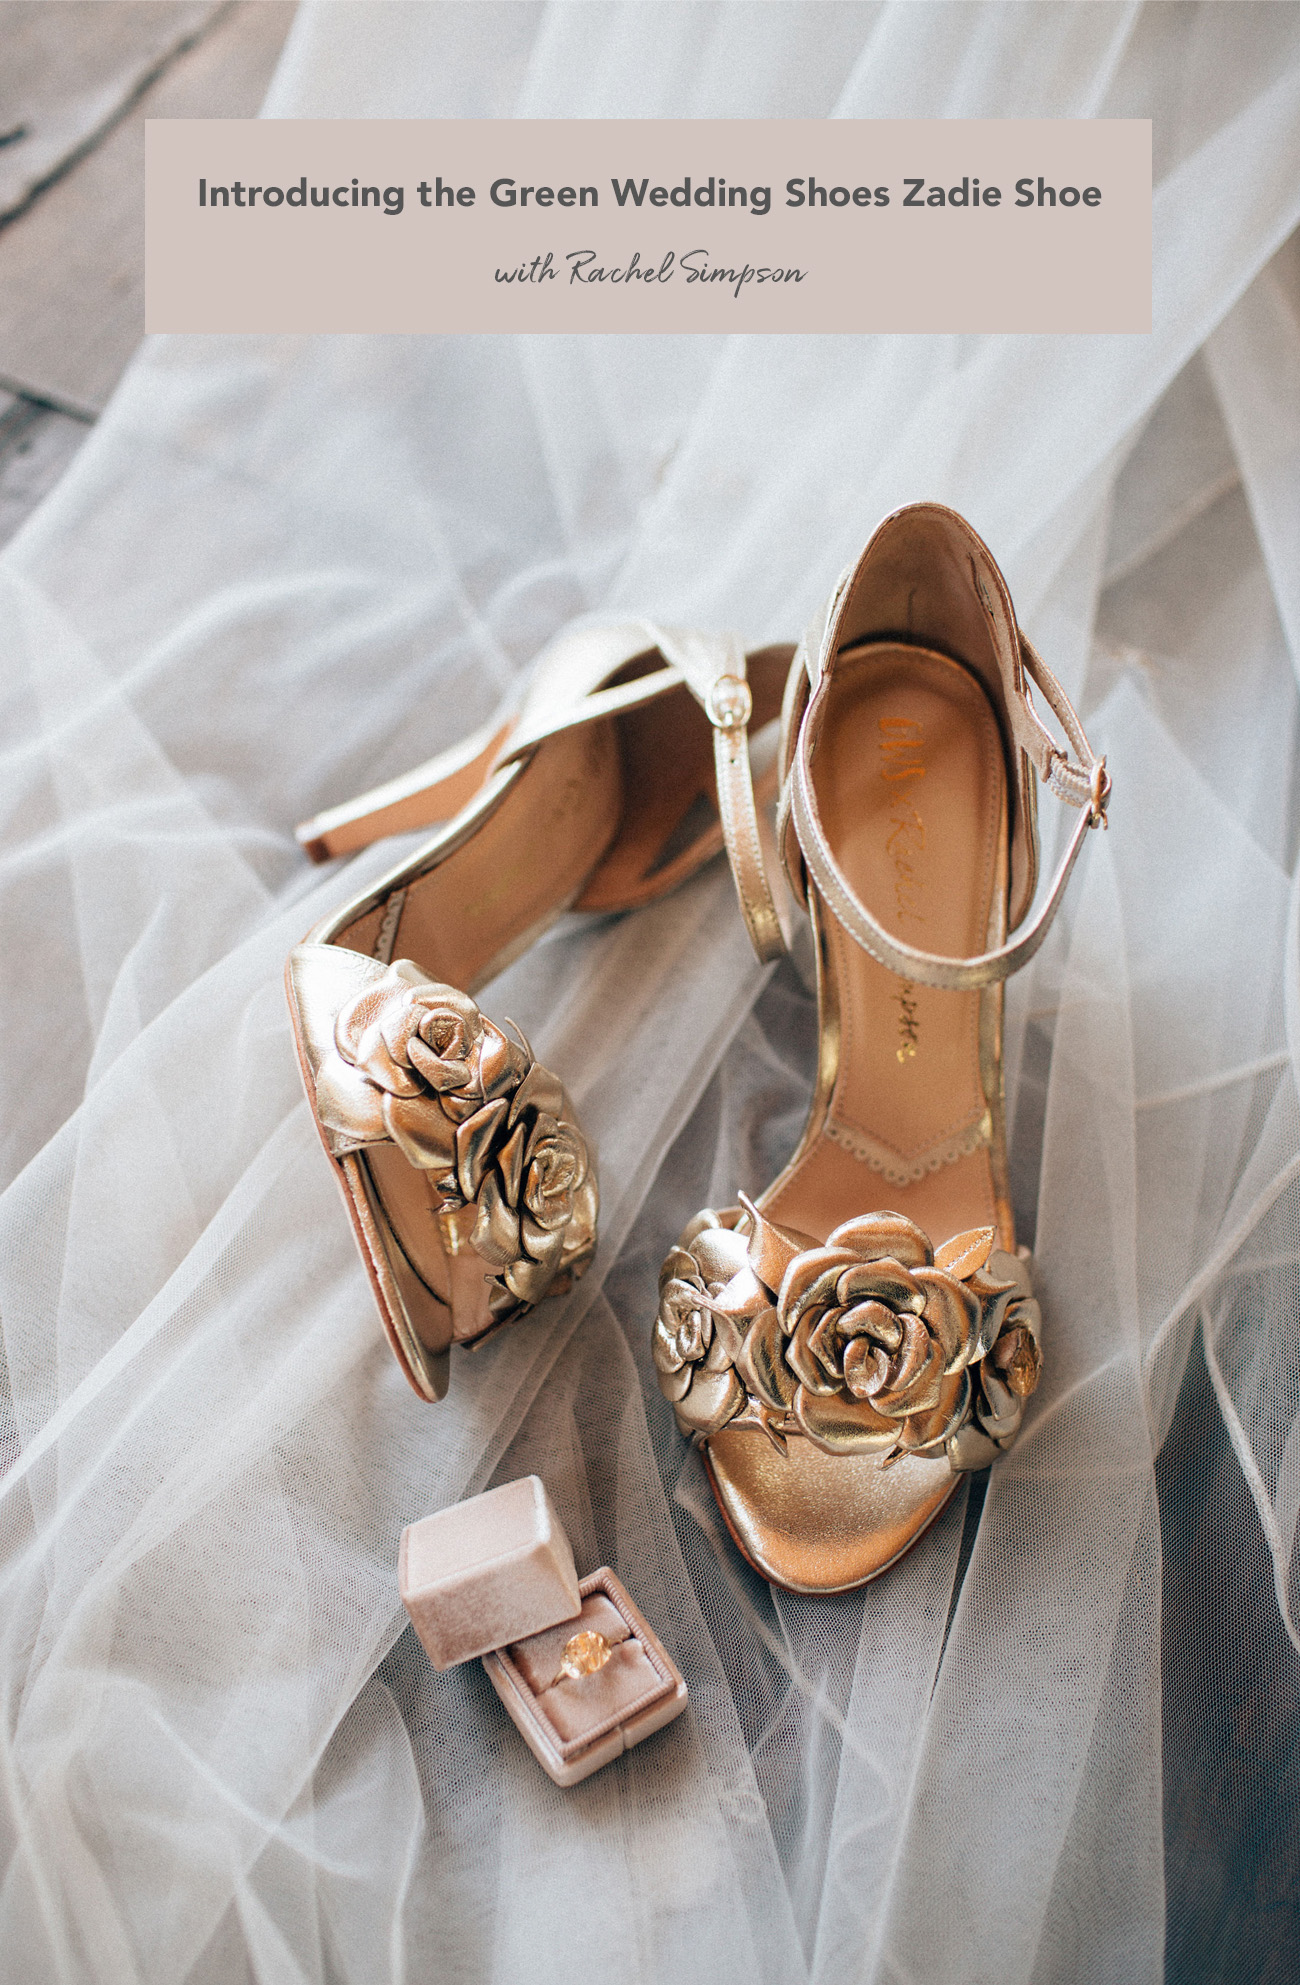 Green Wedding Shoes Zadie Shoe with Rachel Simpson